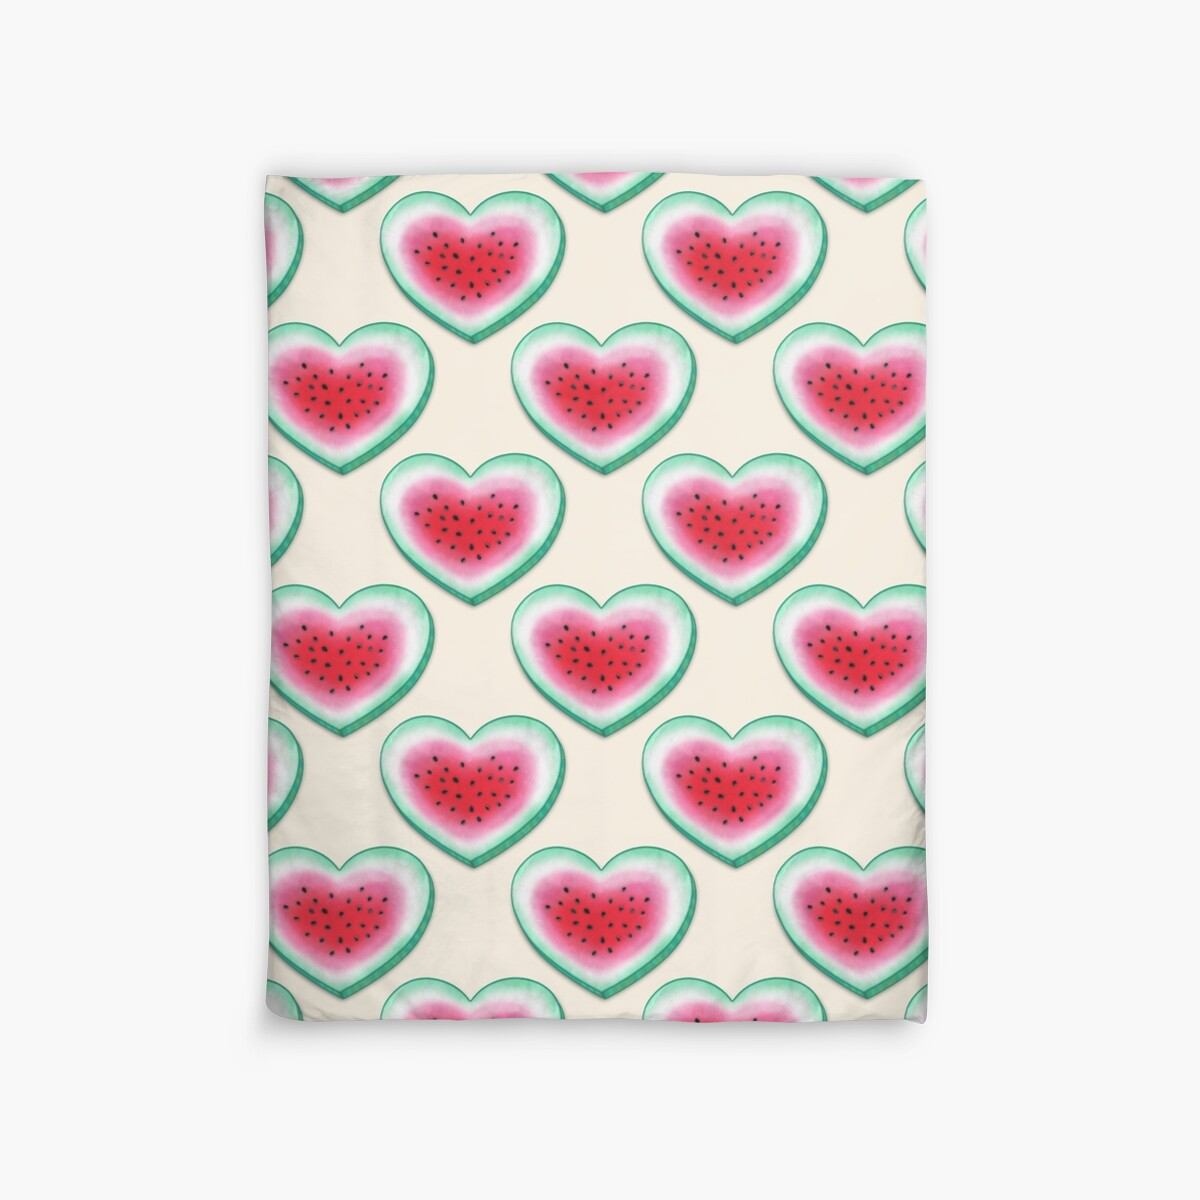 Quot Summer Love Watermelon Heart Quot Duvet Covers By Perrin Le